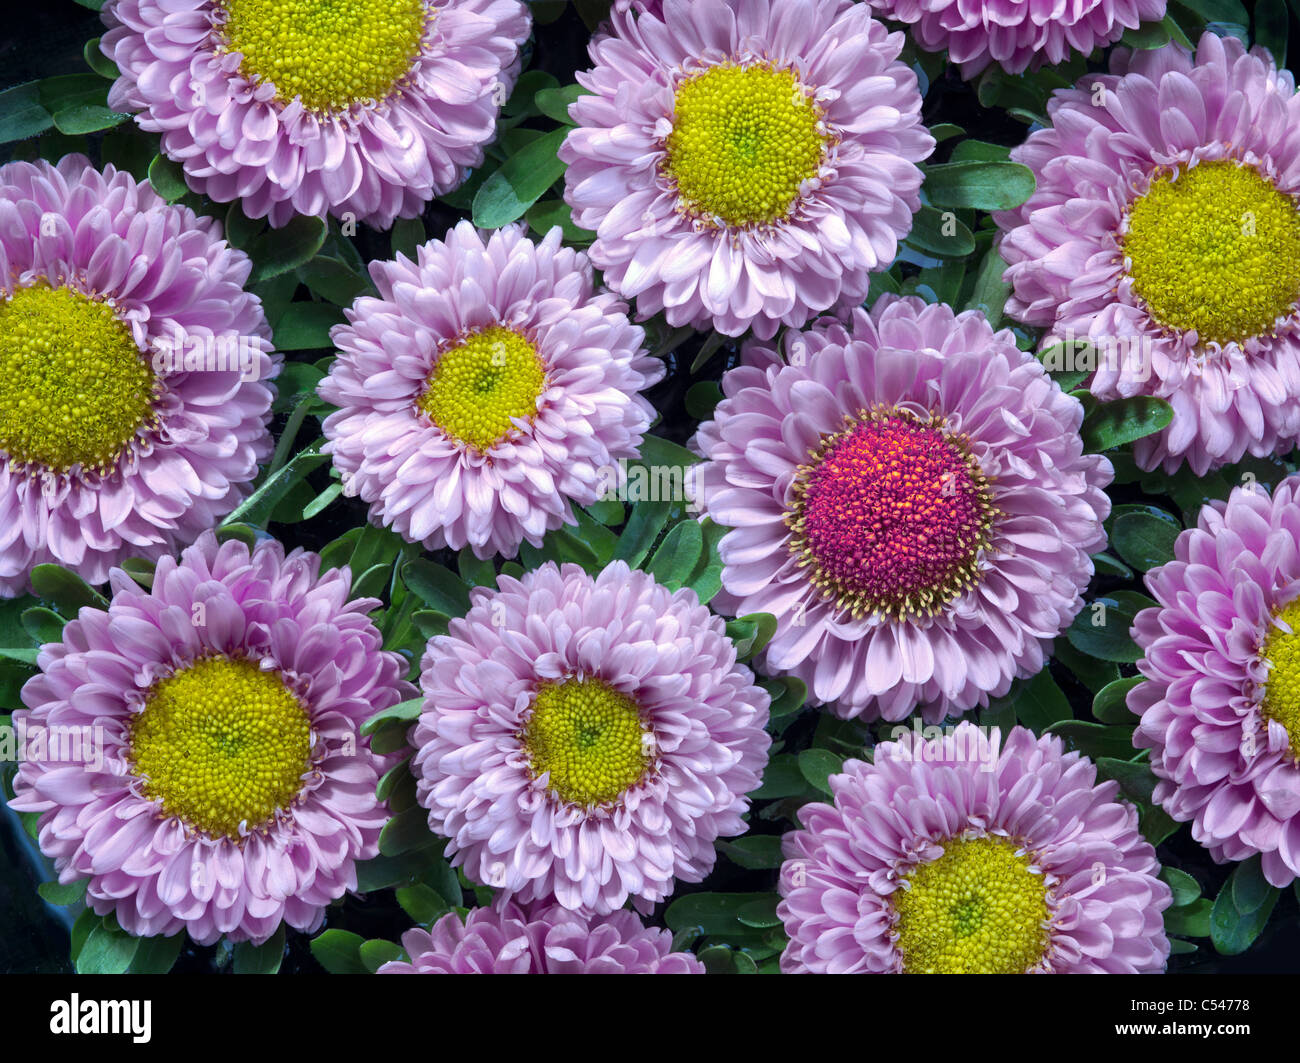 Close up of aster blossoms. - Stock Image